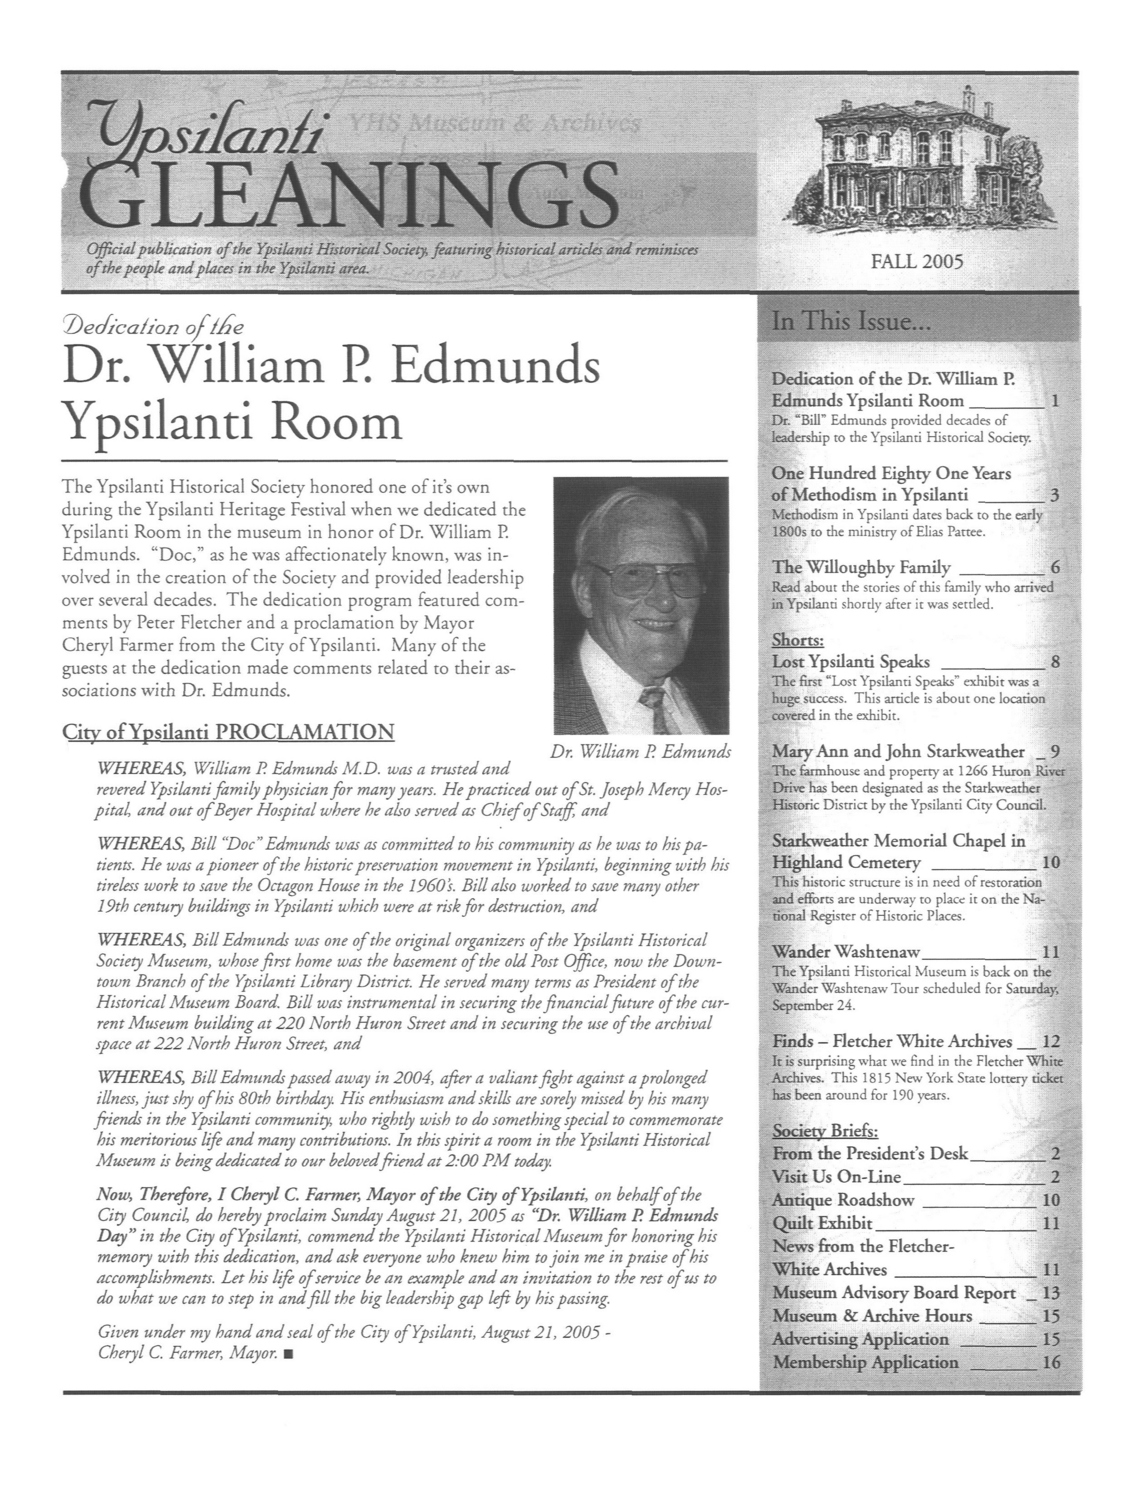 Ypsilanti Gleanings, Fall 2005 image